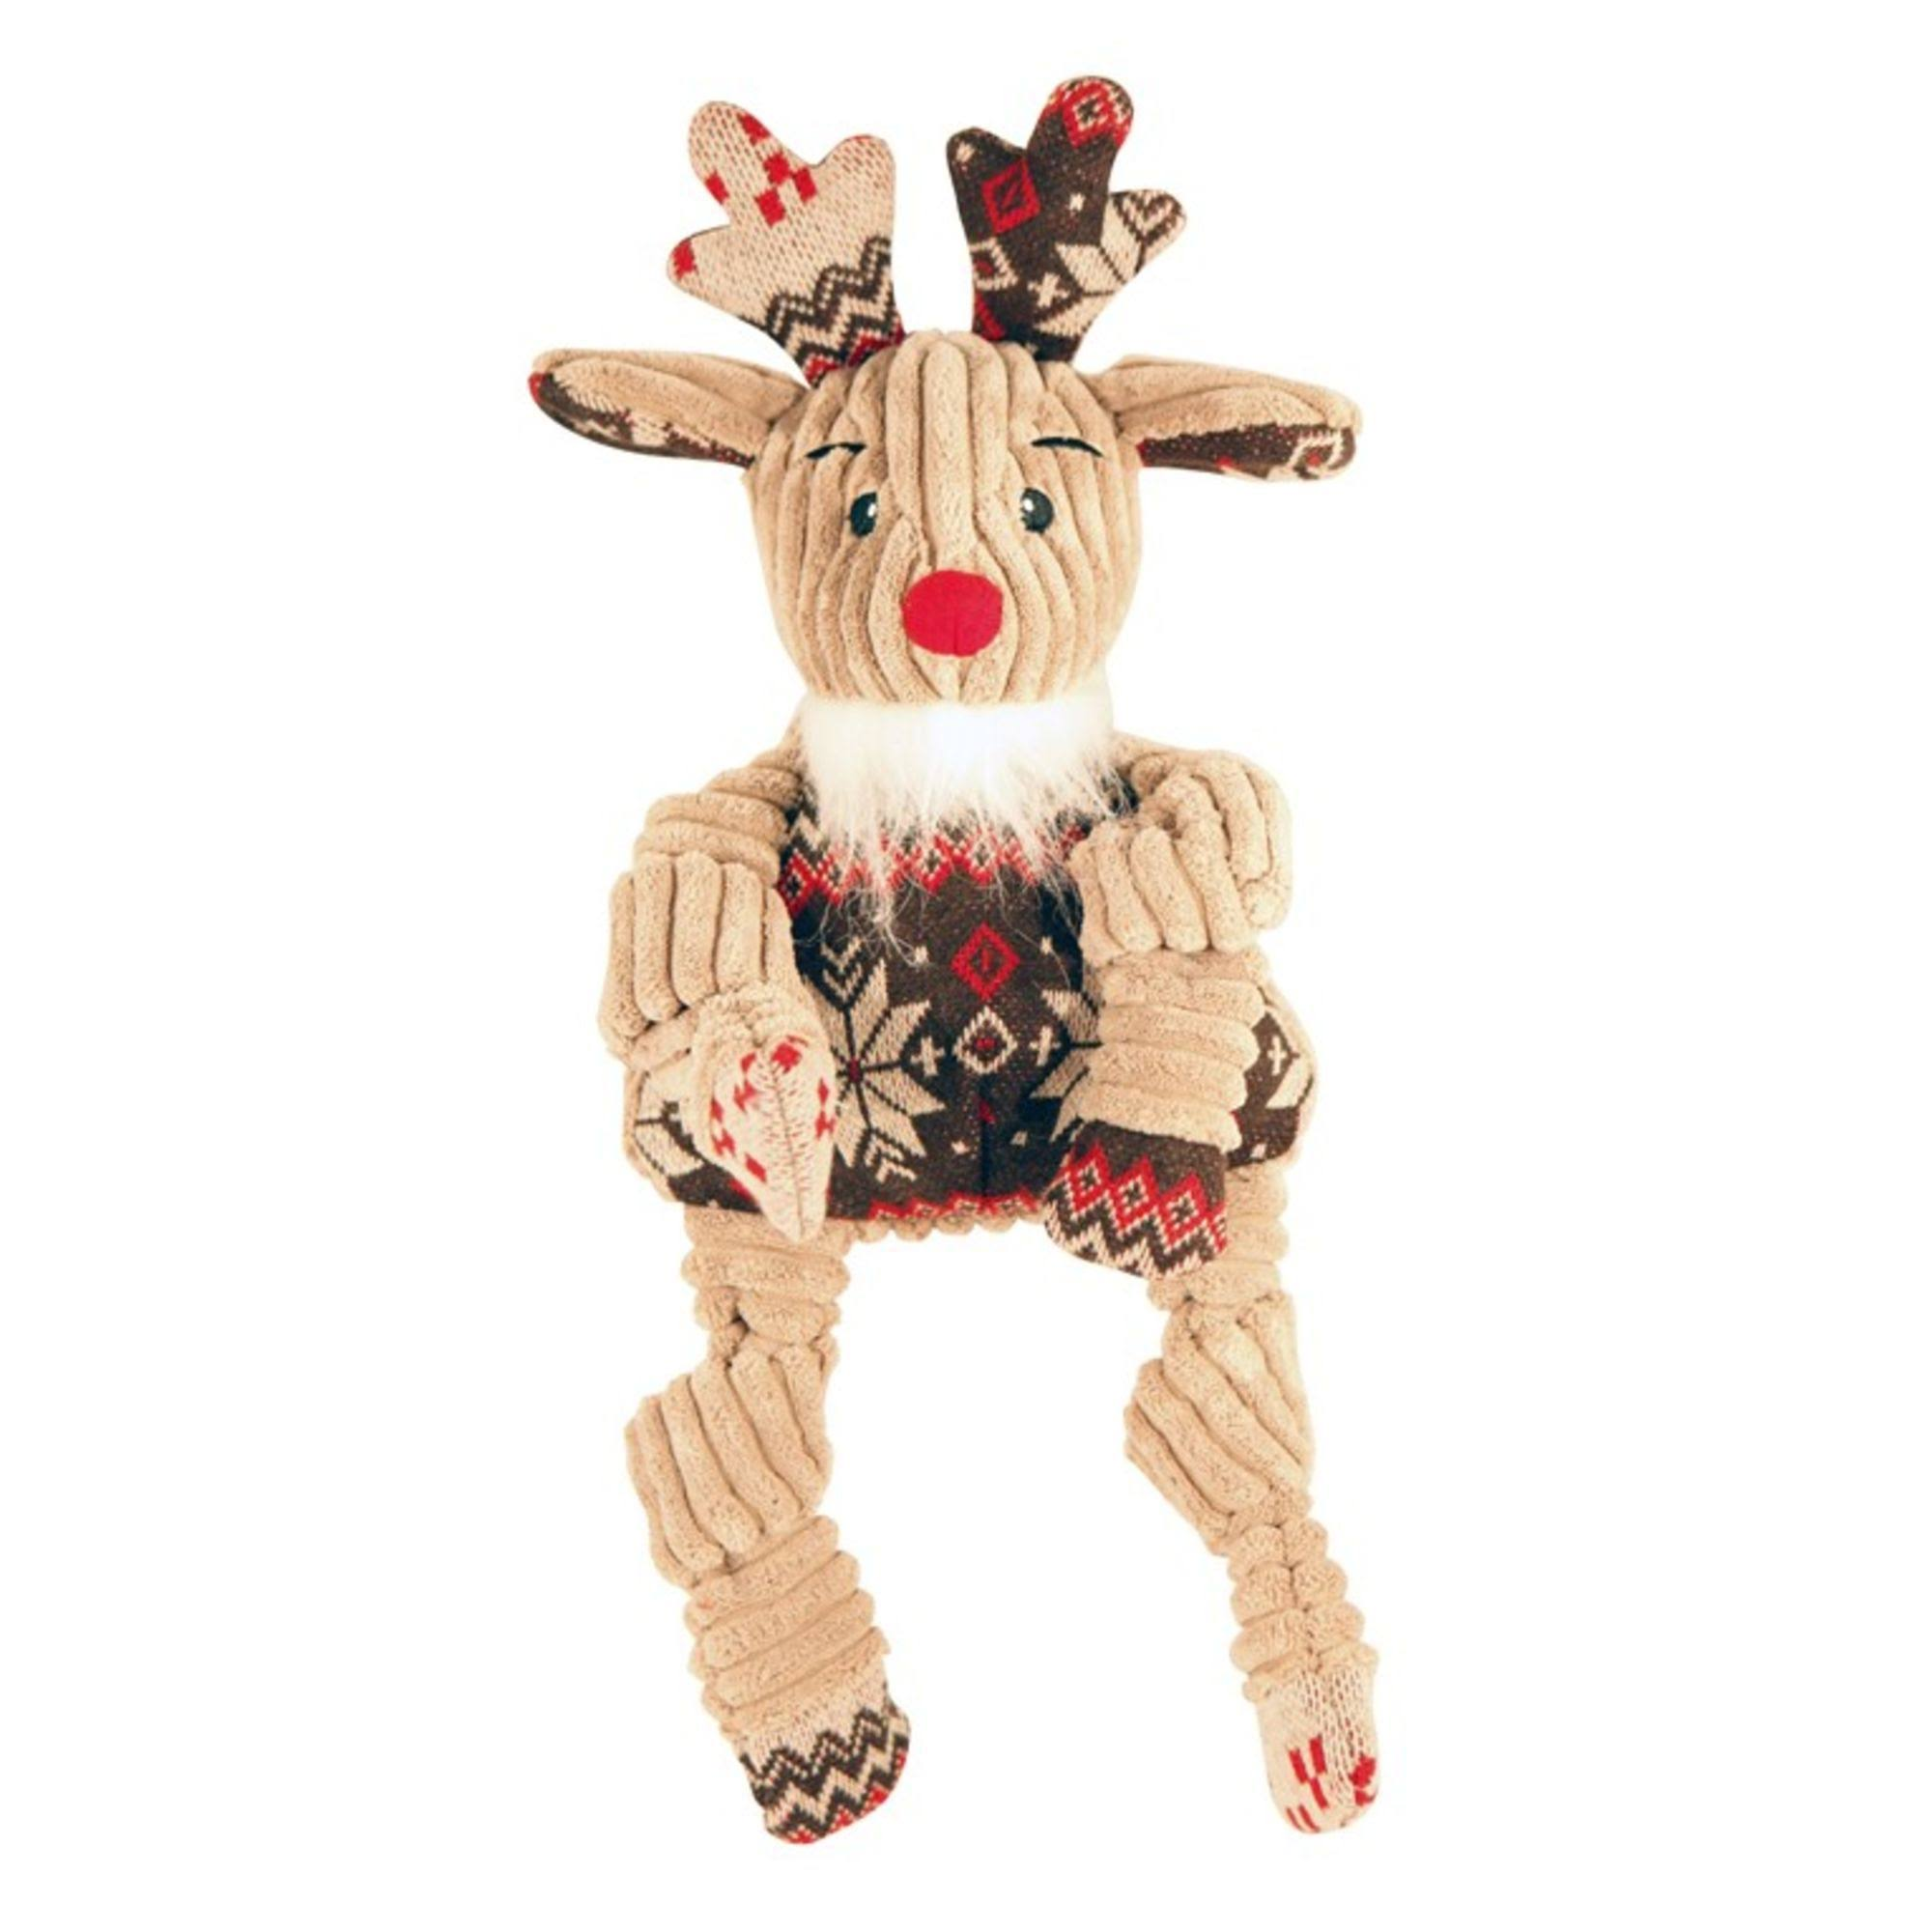 HuggleHounds Holiday Knotties Rudolph Reindeer Dog Toy